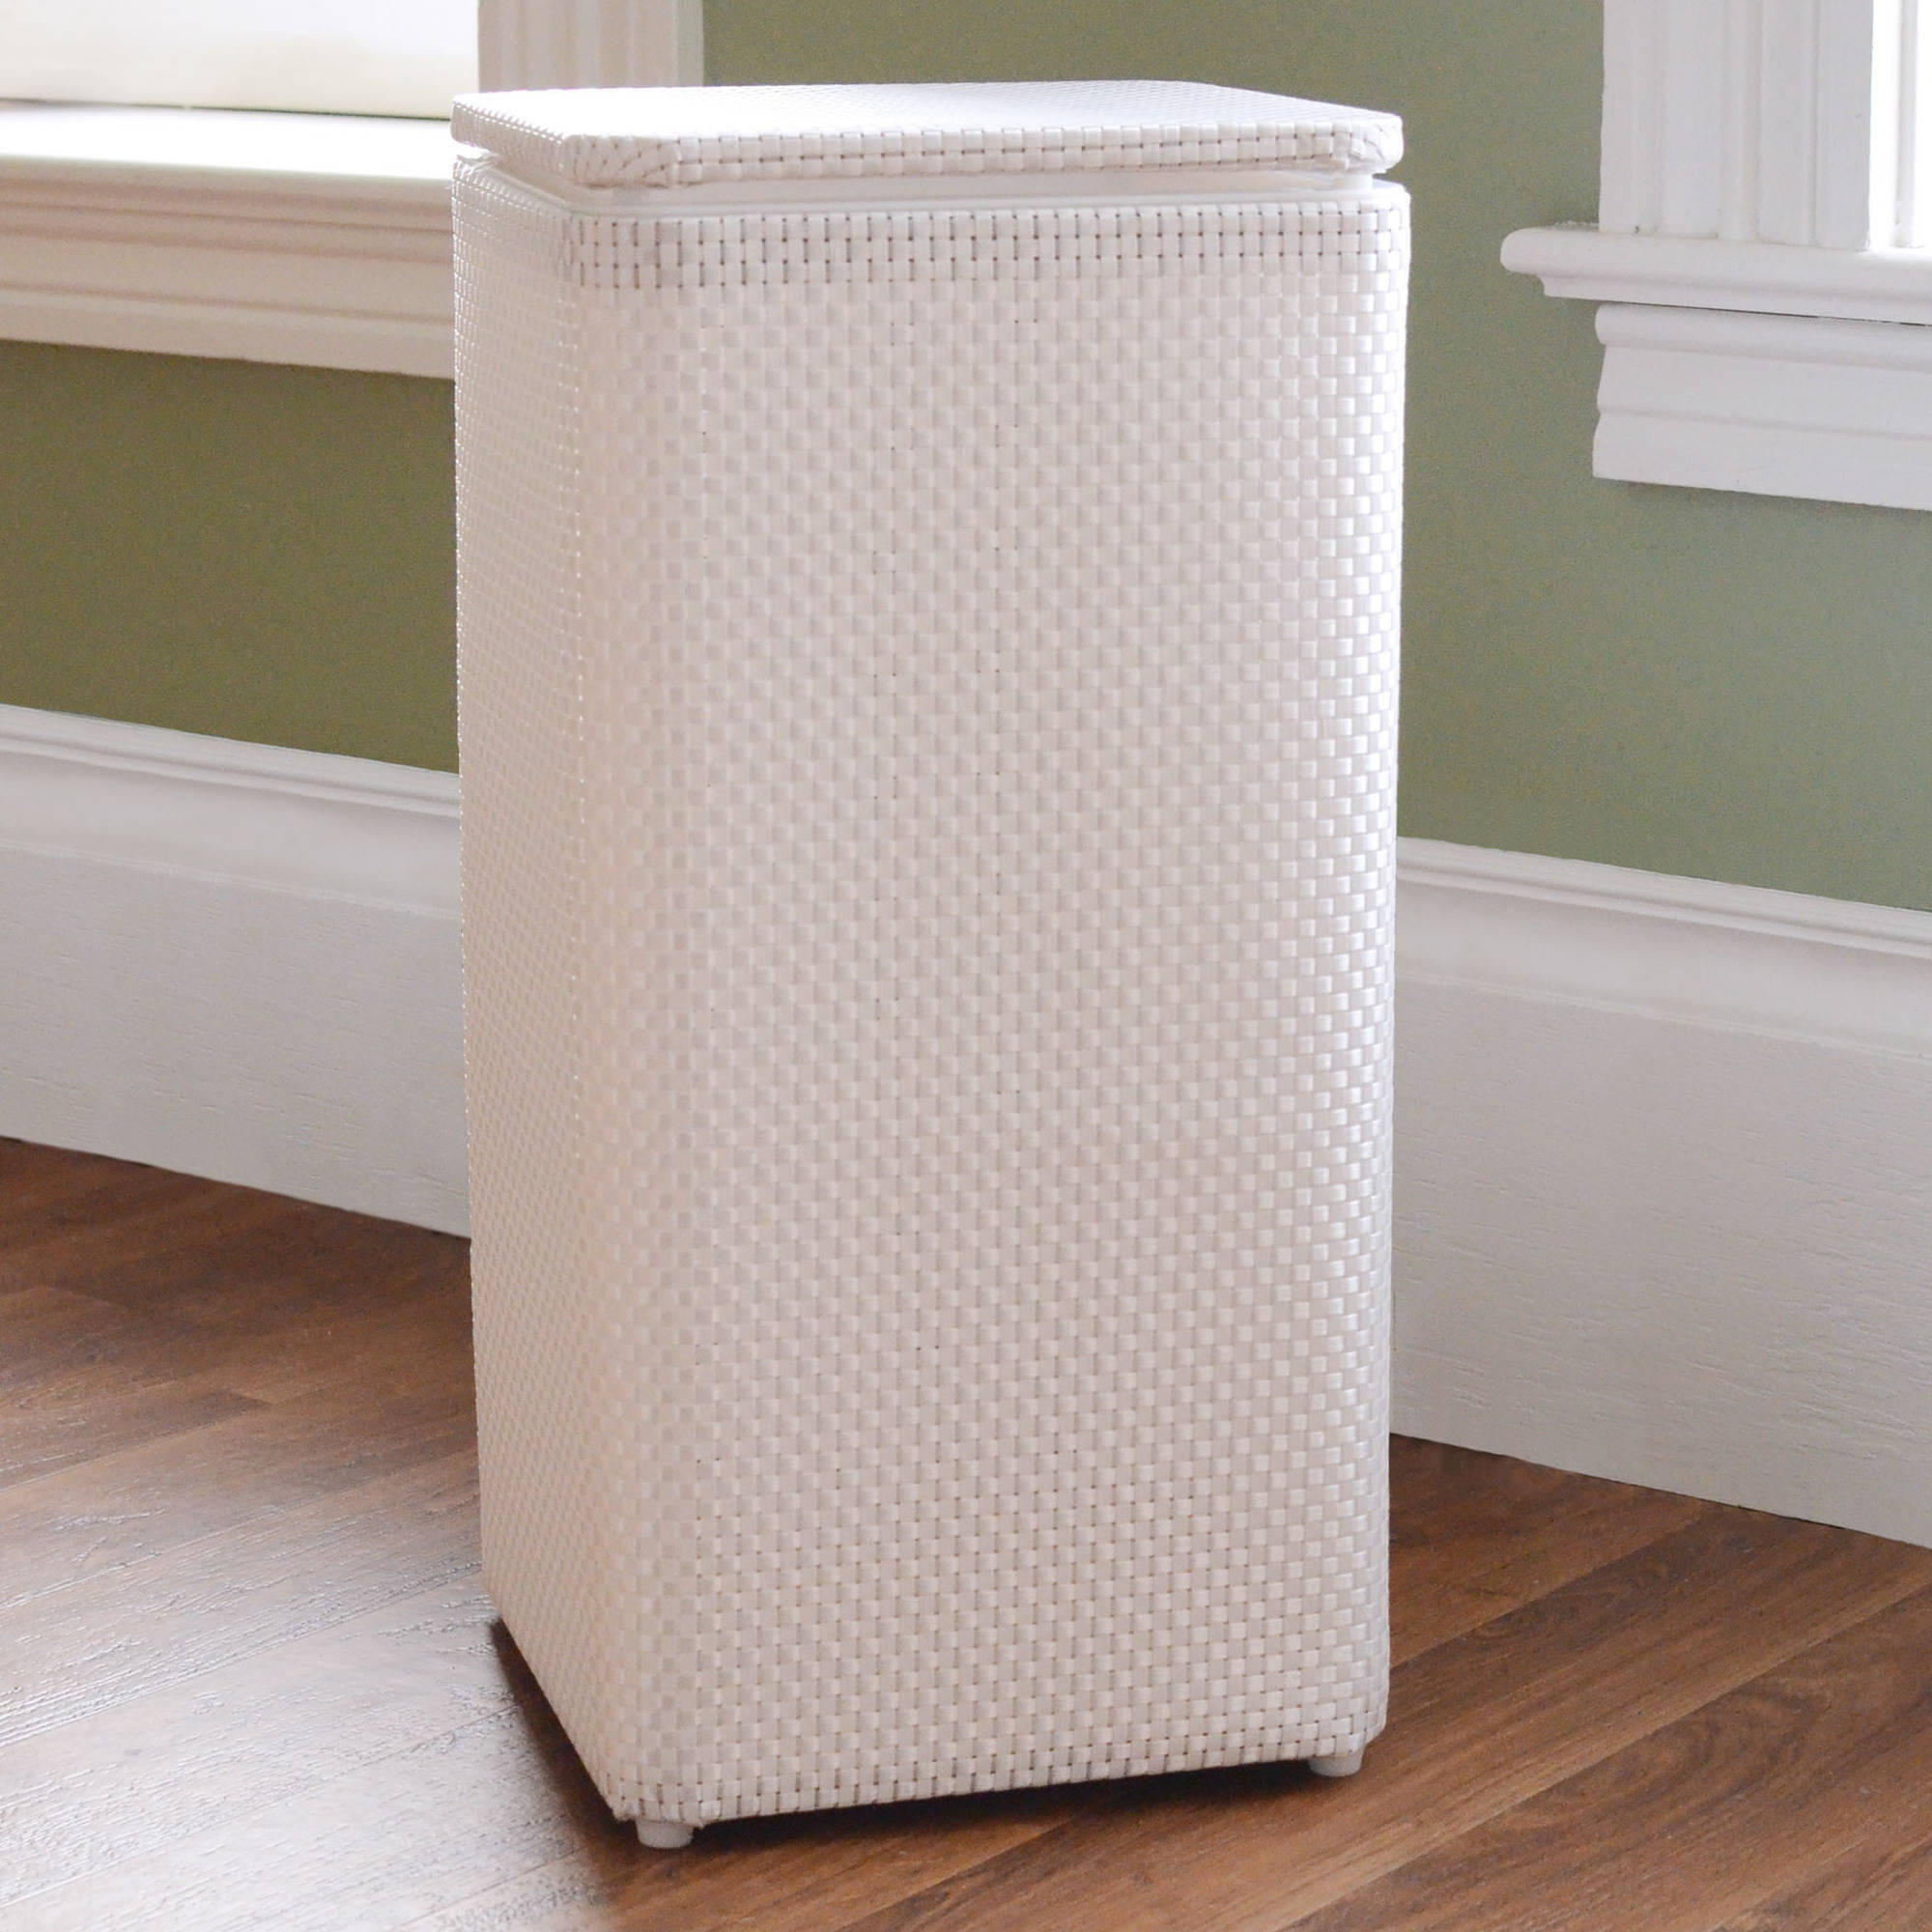 1530 LaMont Home Apartment Hamper